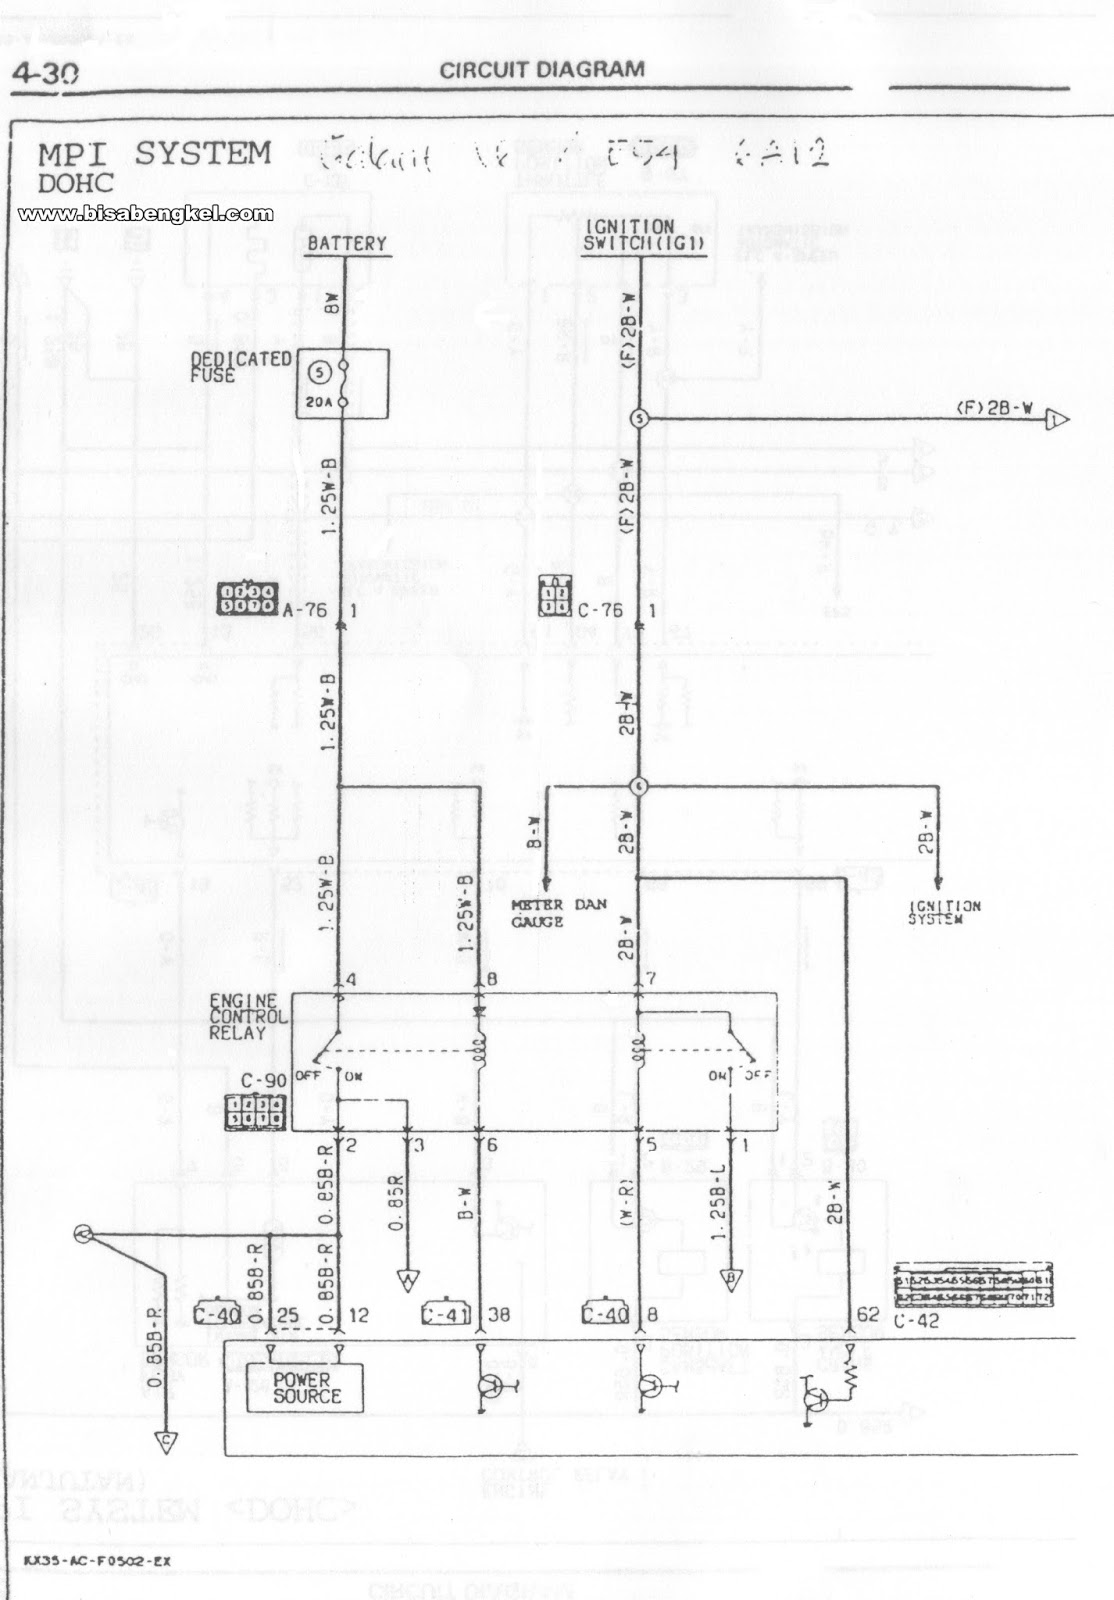 mitsubishi eterna v6 wiring diagram wiring diagram blogs rh 11 2 restaurant freinsheimer hof de mitsubishi eclipse wiring diagram 95 mitsubishi galant  [ 1114 x 1600 Pixel ]